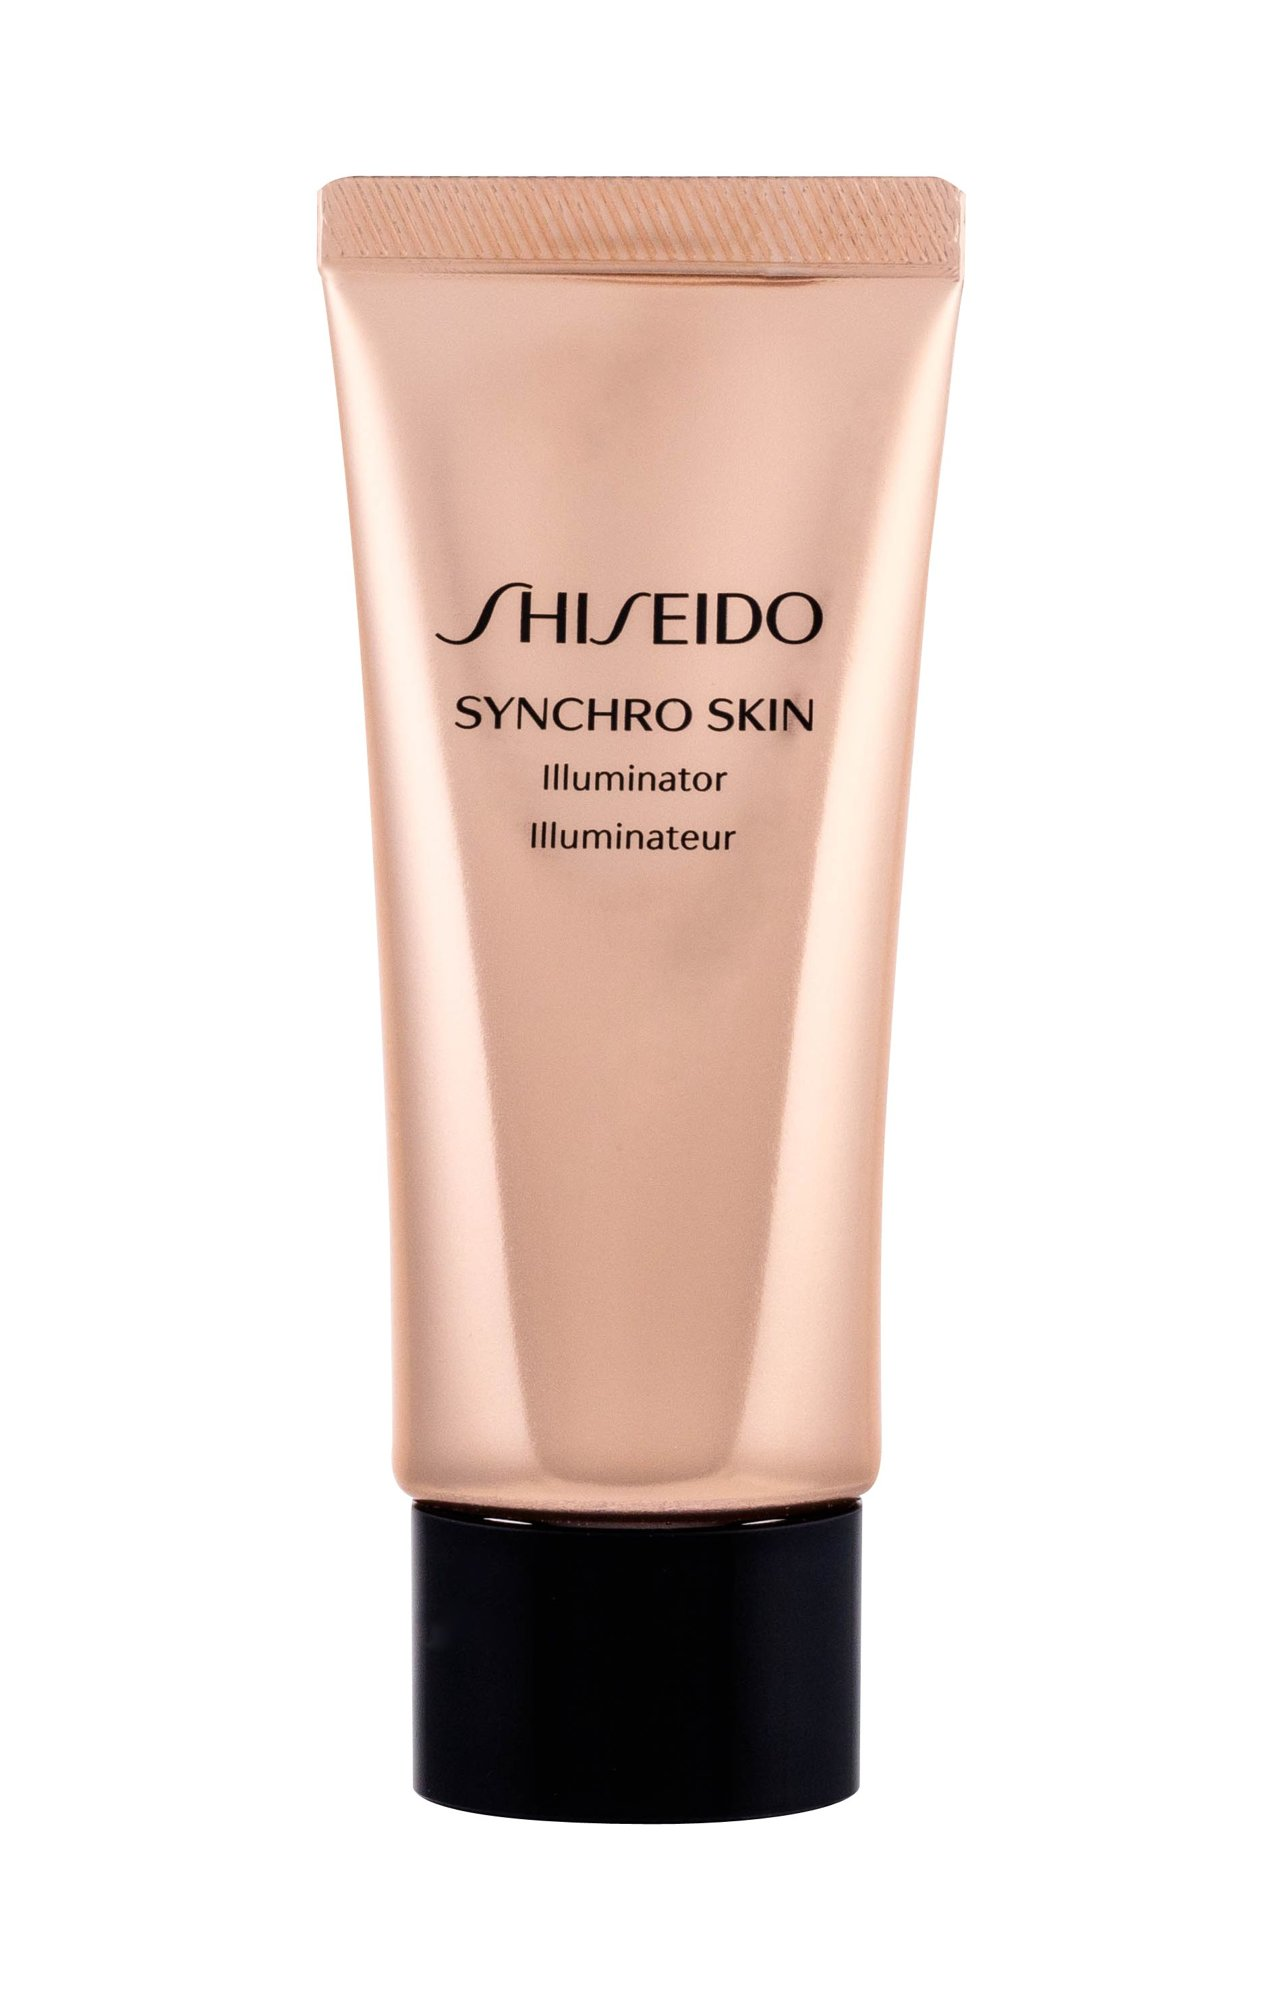 Shiseido Synchro Skin Brightener 40ml Rose Gold